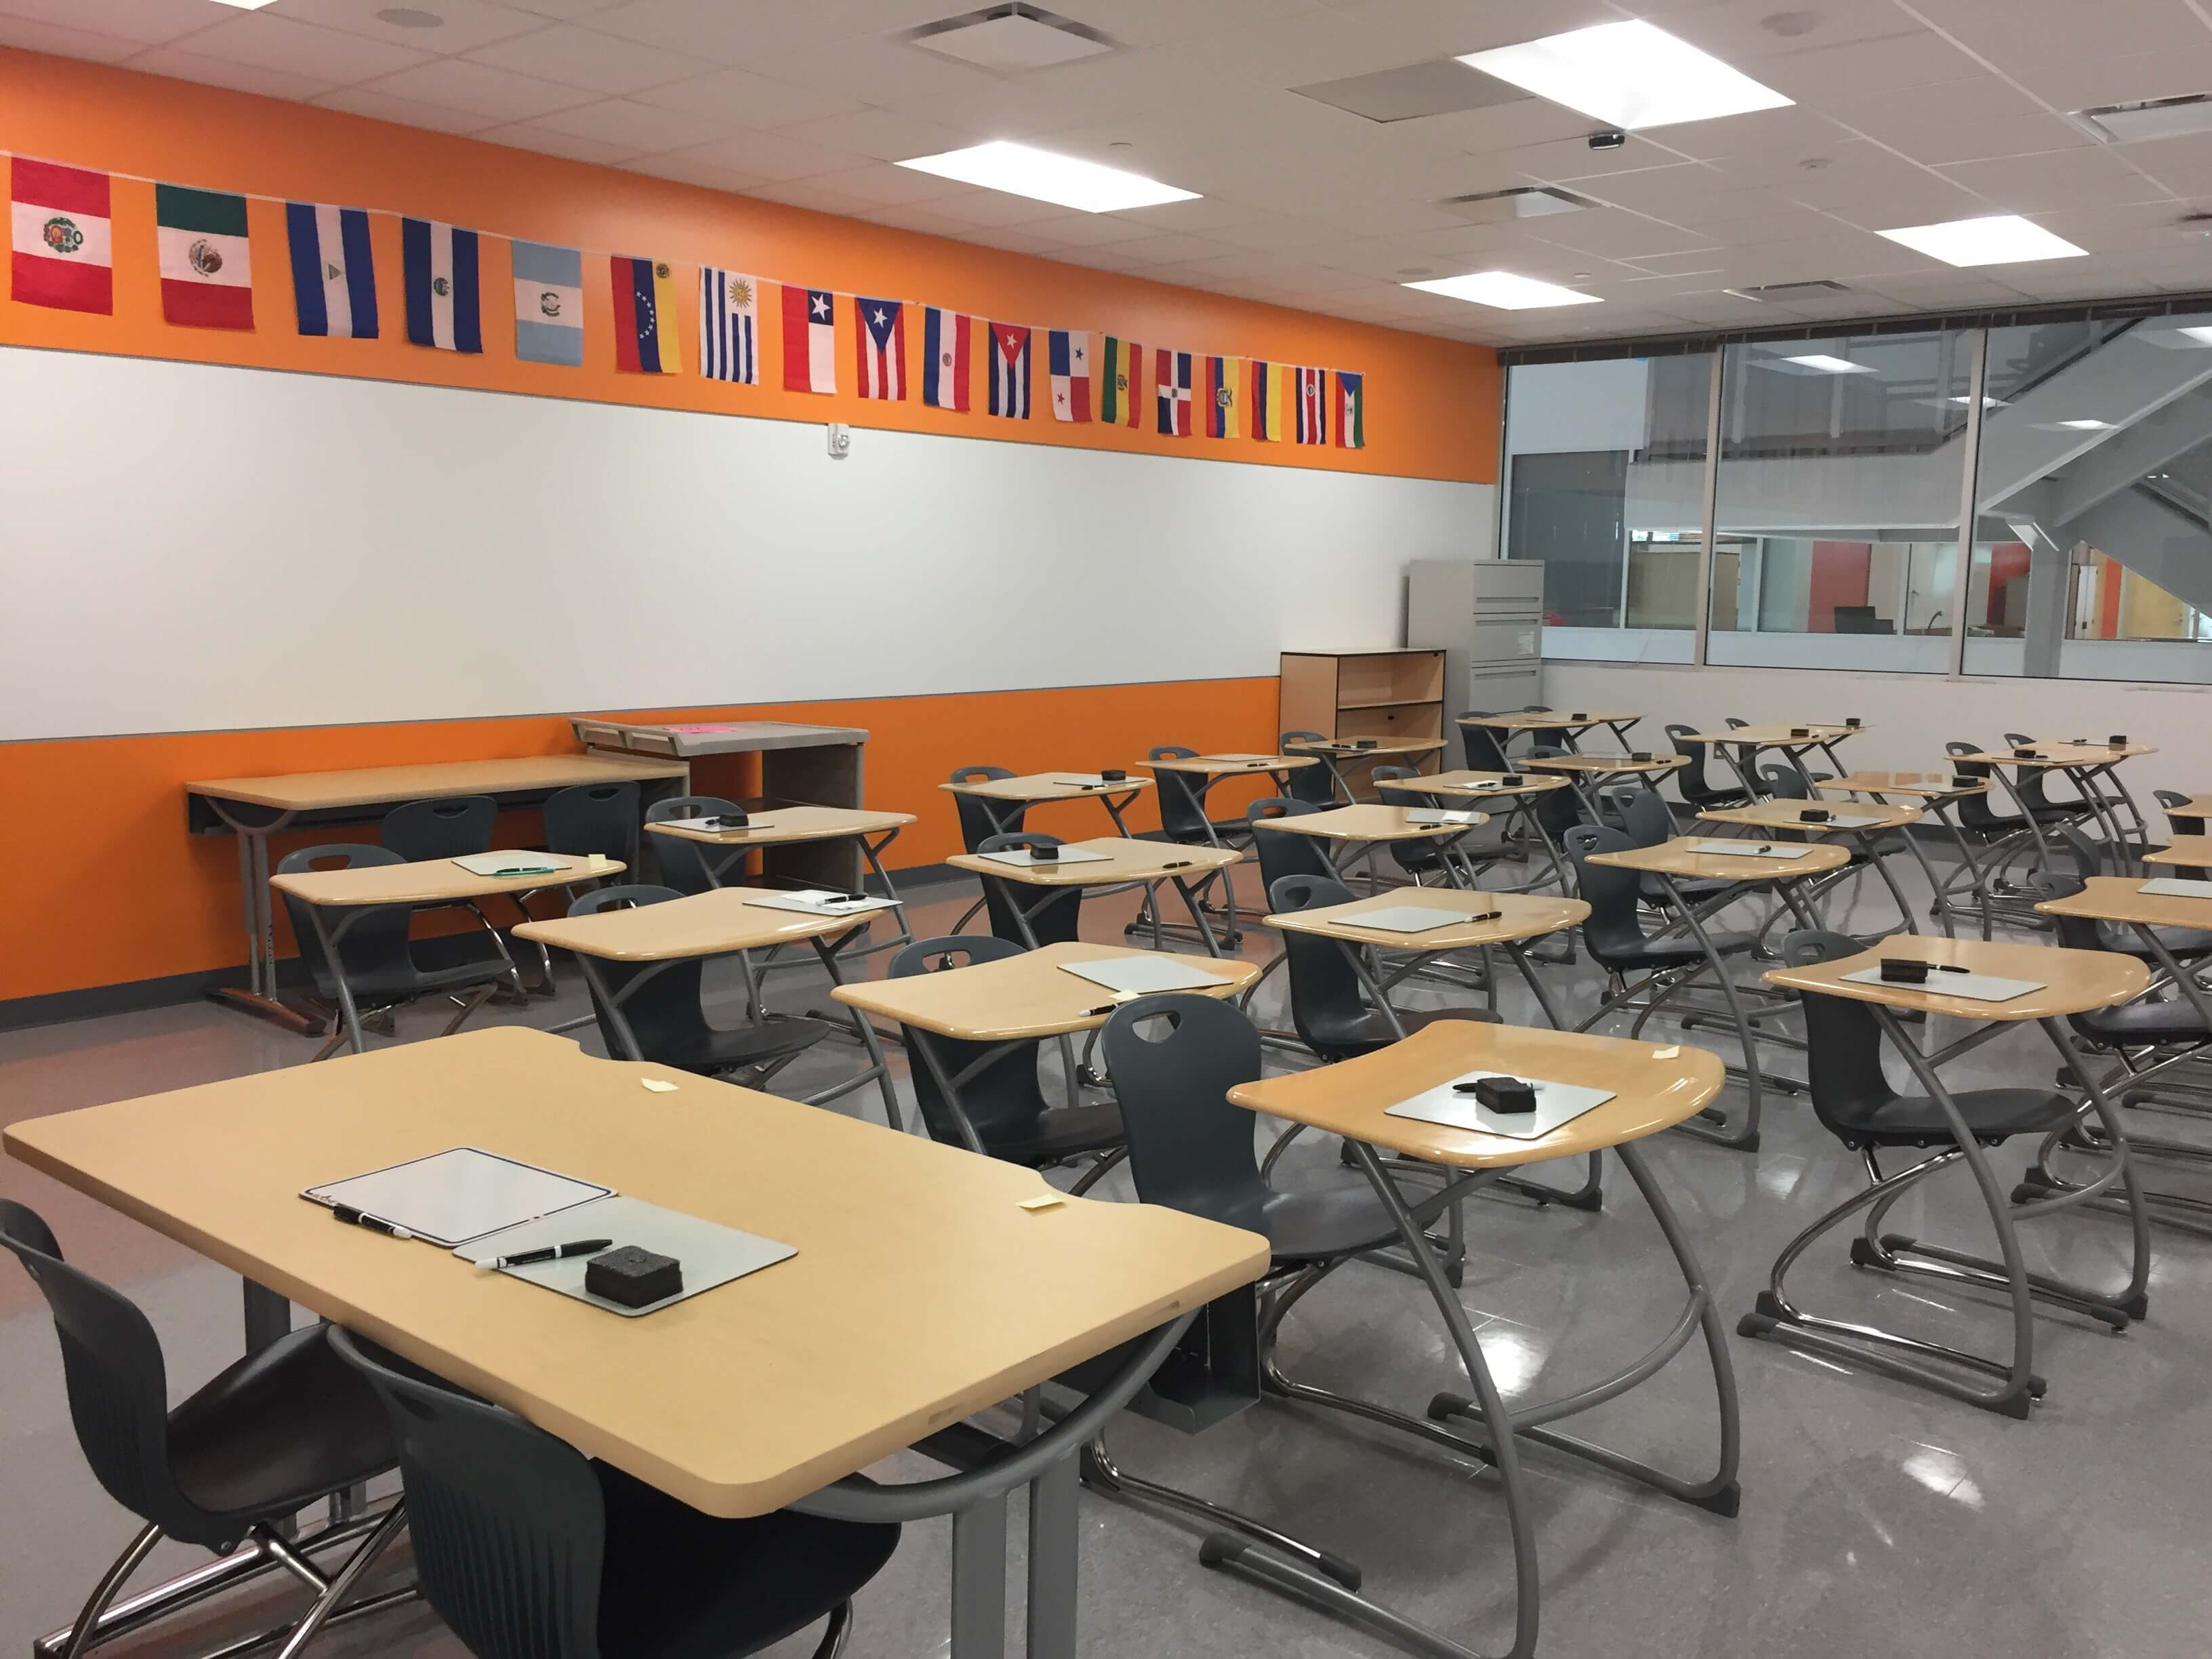 Classroom in the new building.